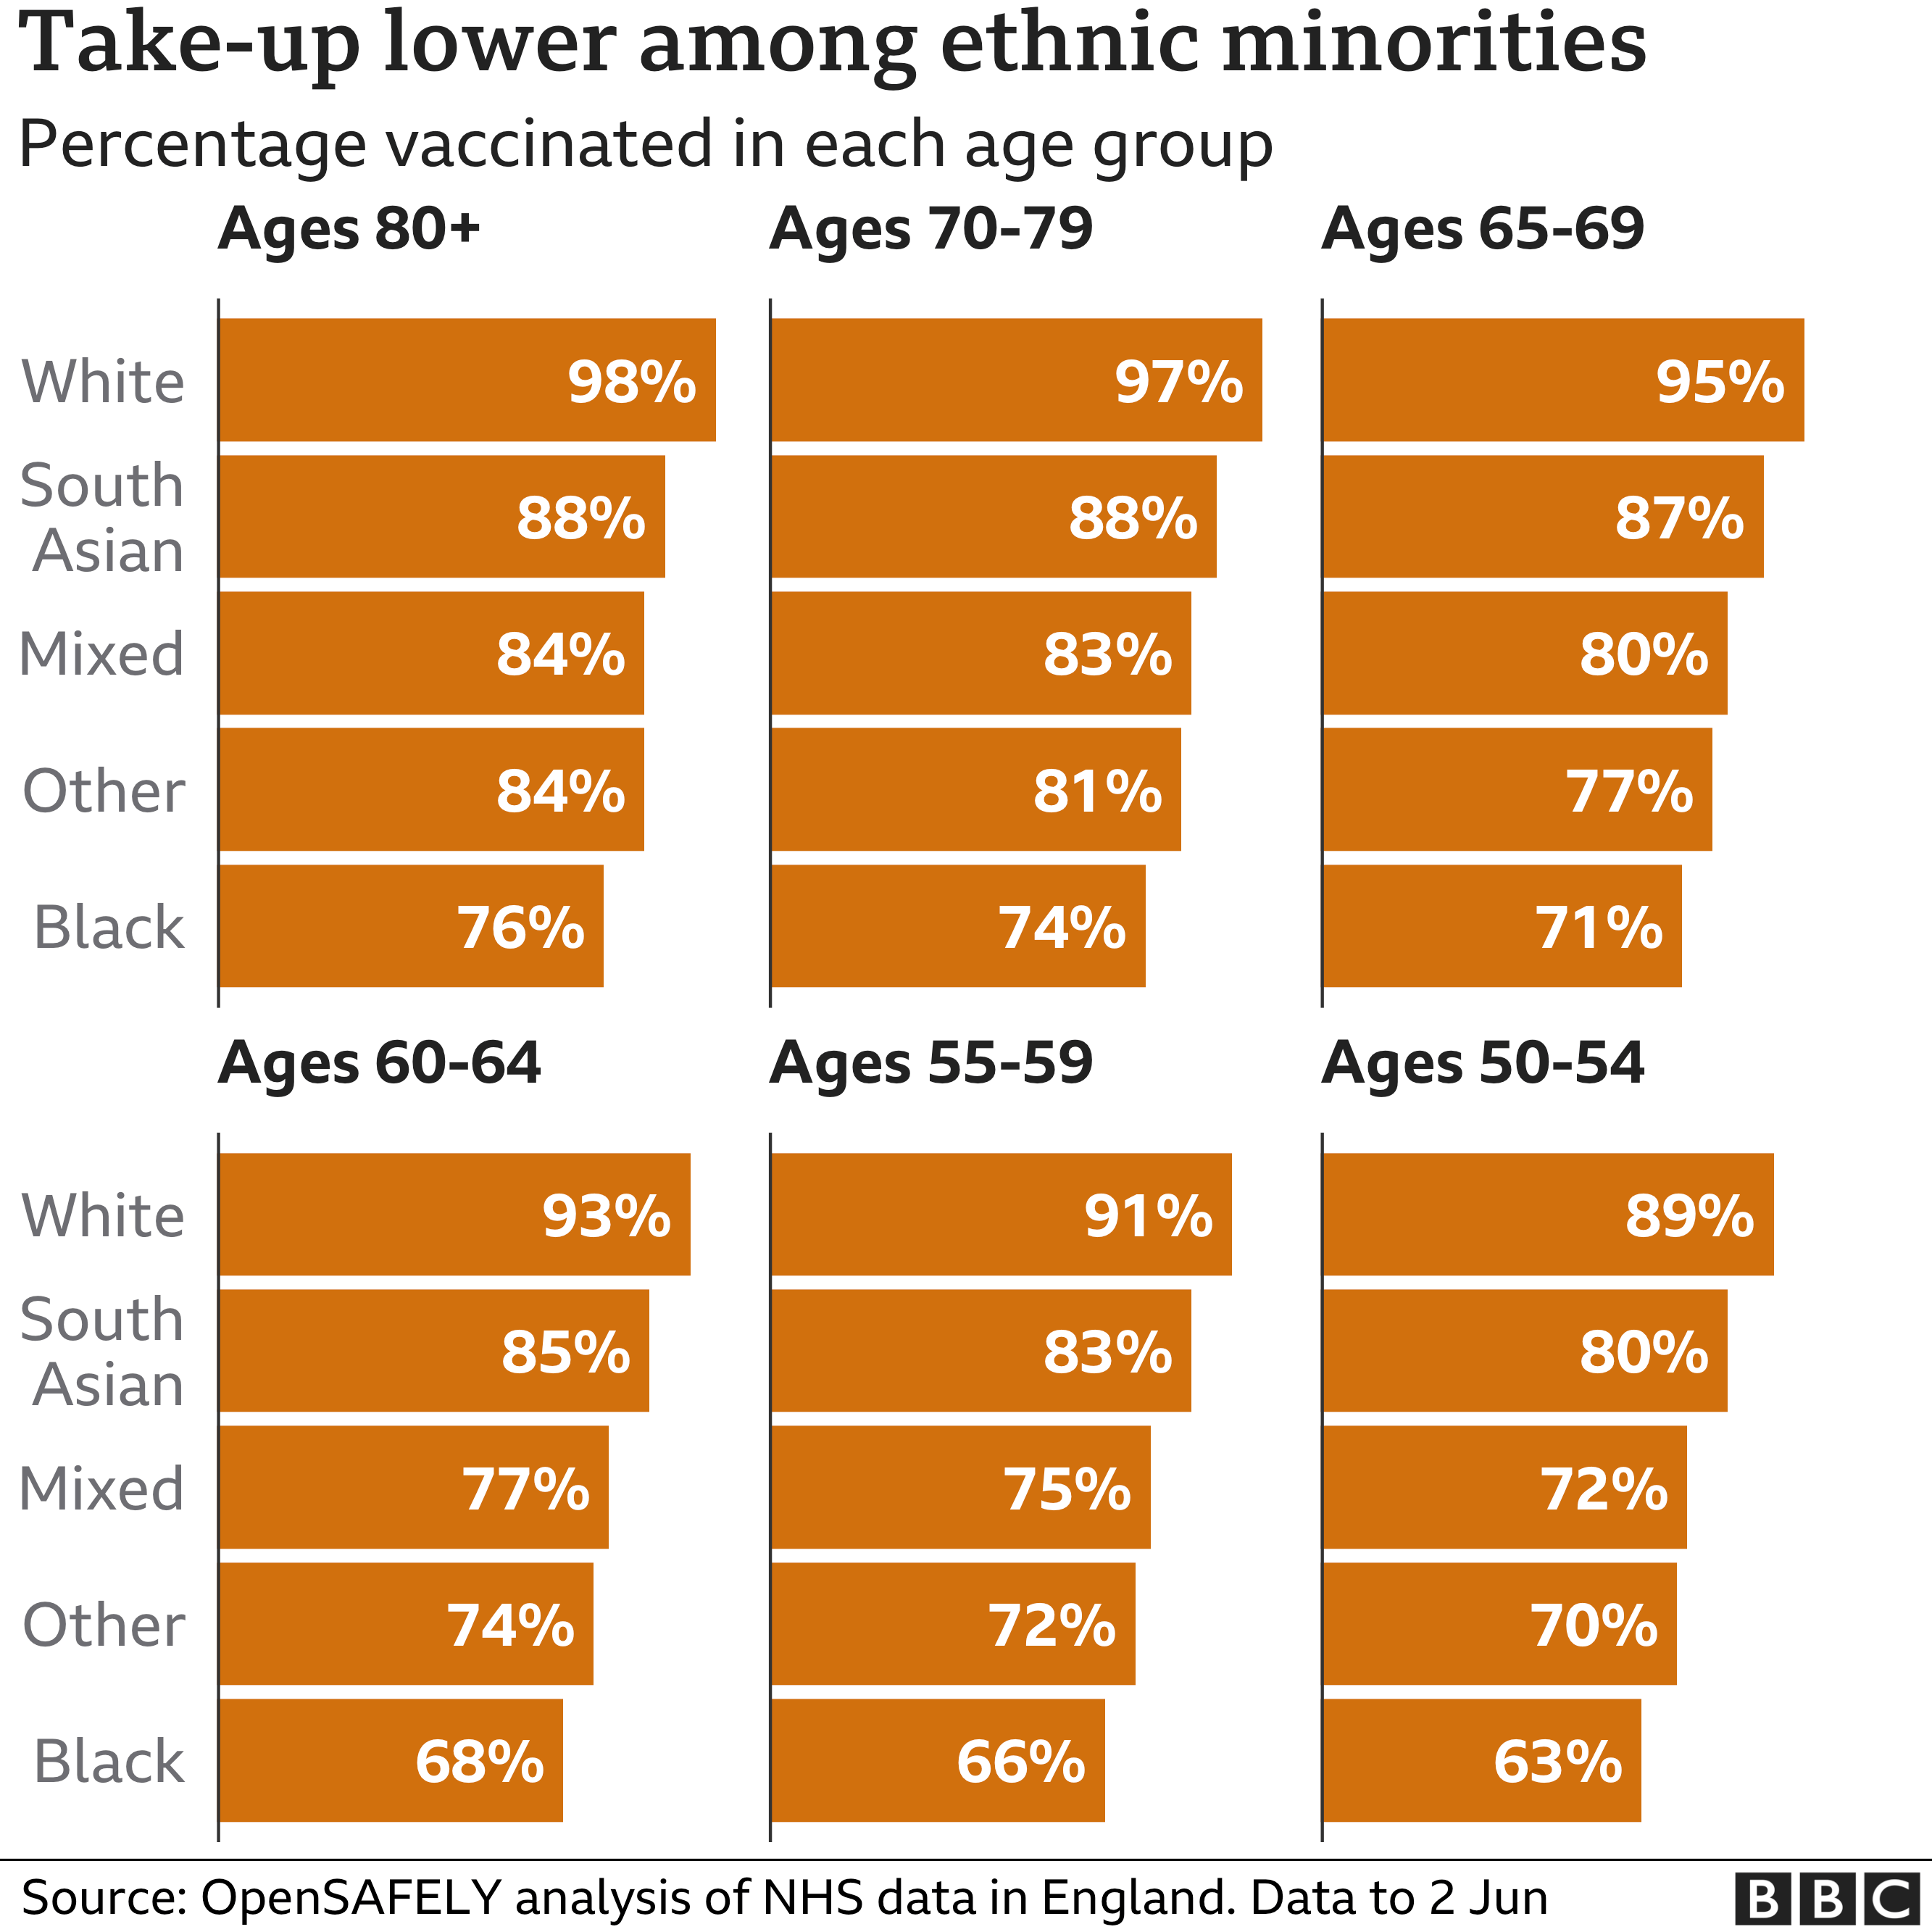 Chart showing take-up of the vaccine is lower among ethnic minorities. Updated 10 June.